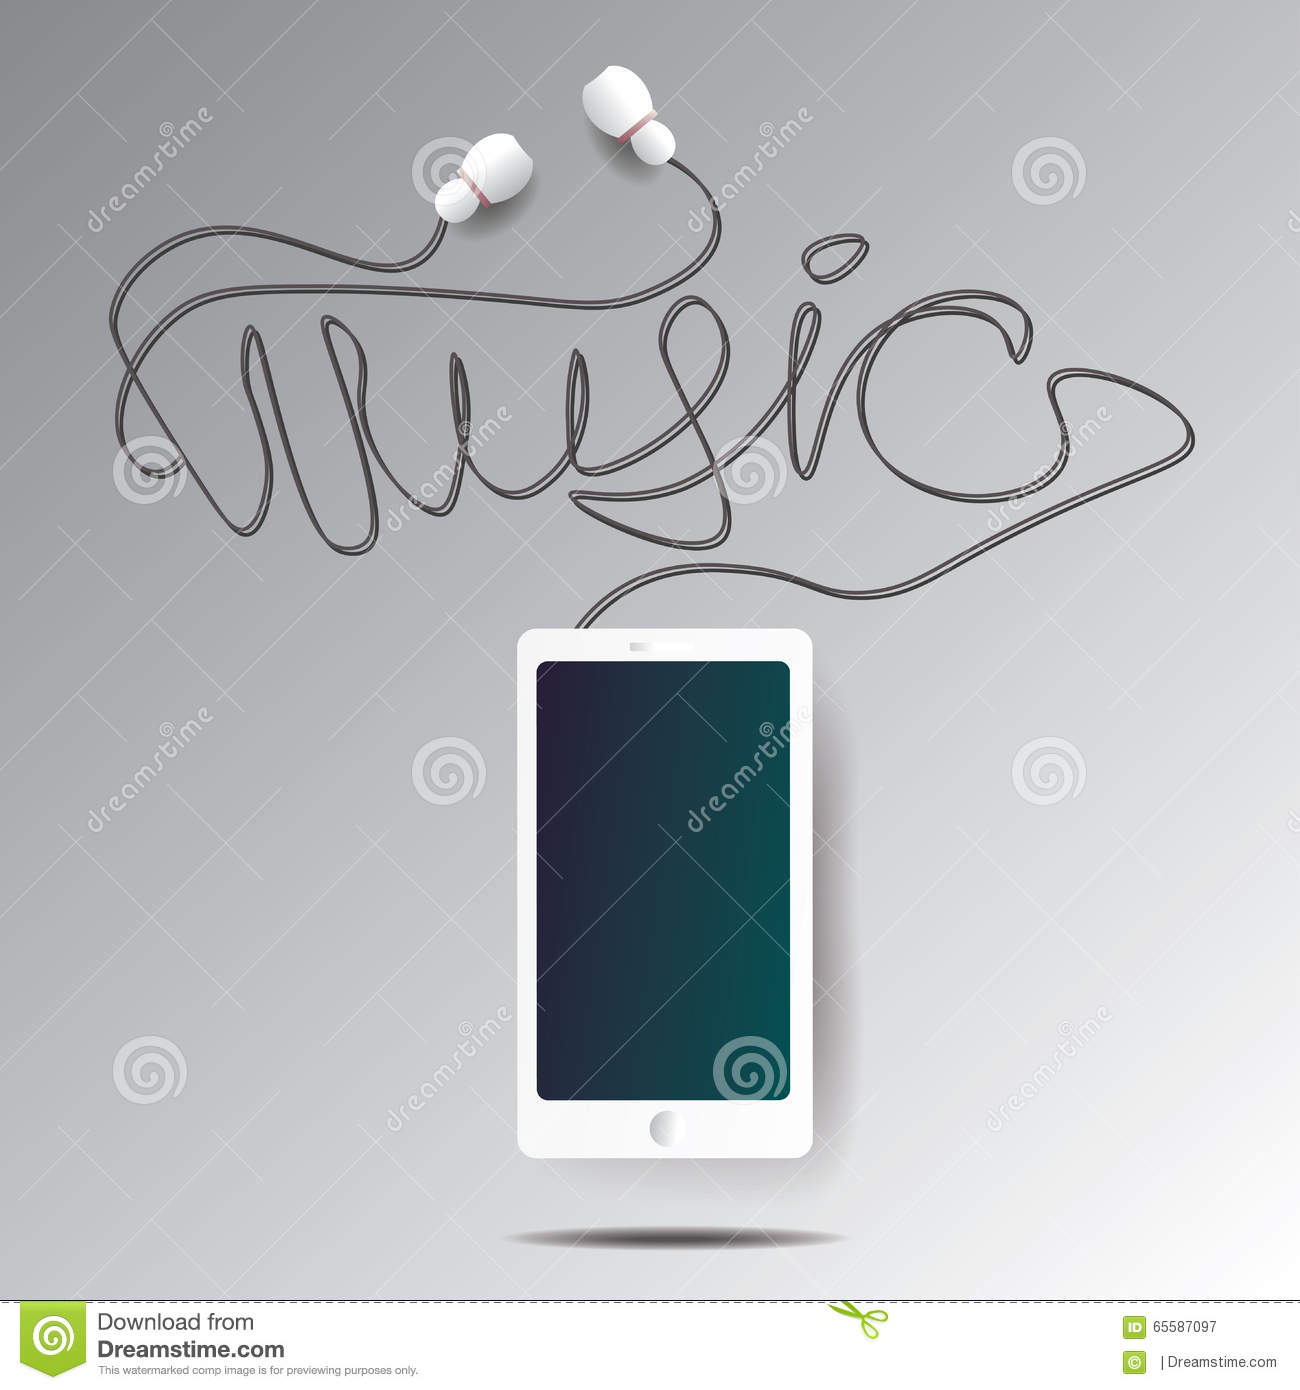 Realistic smartphone and headphones illustration with word music made from  wire